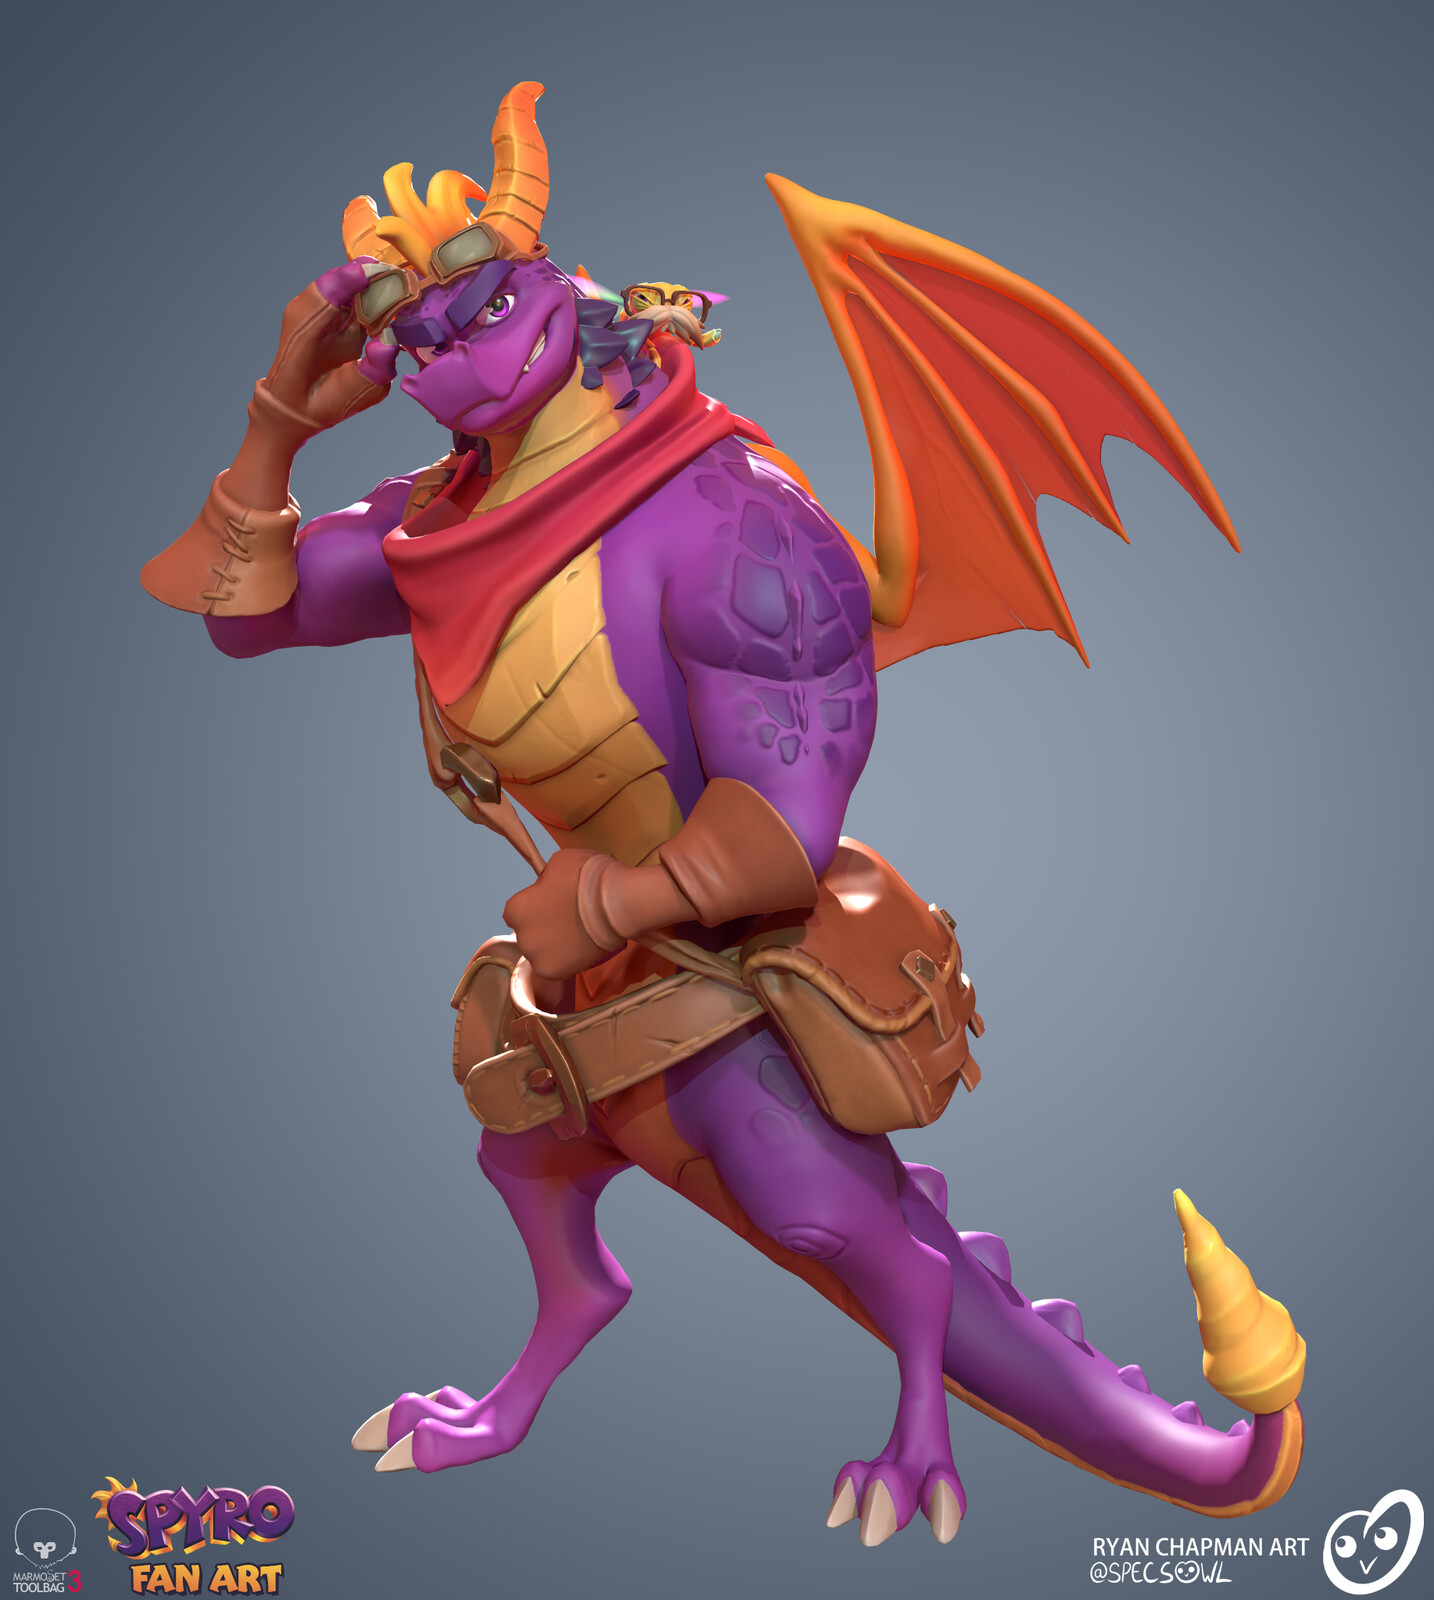 An original pose to show the moodier side of our purple dragon